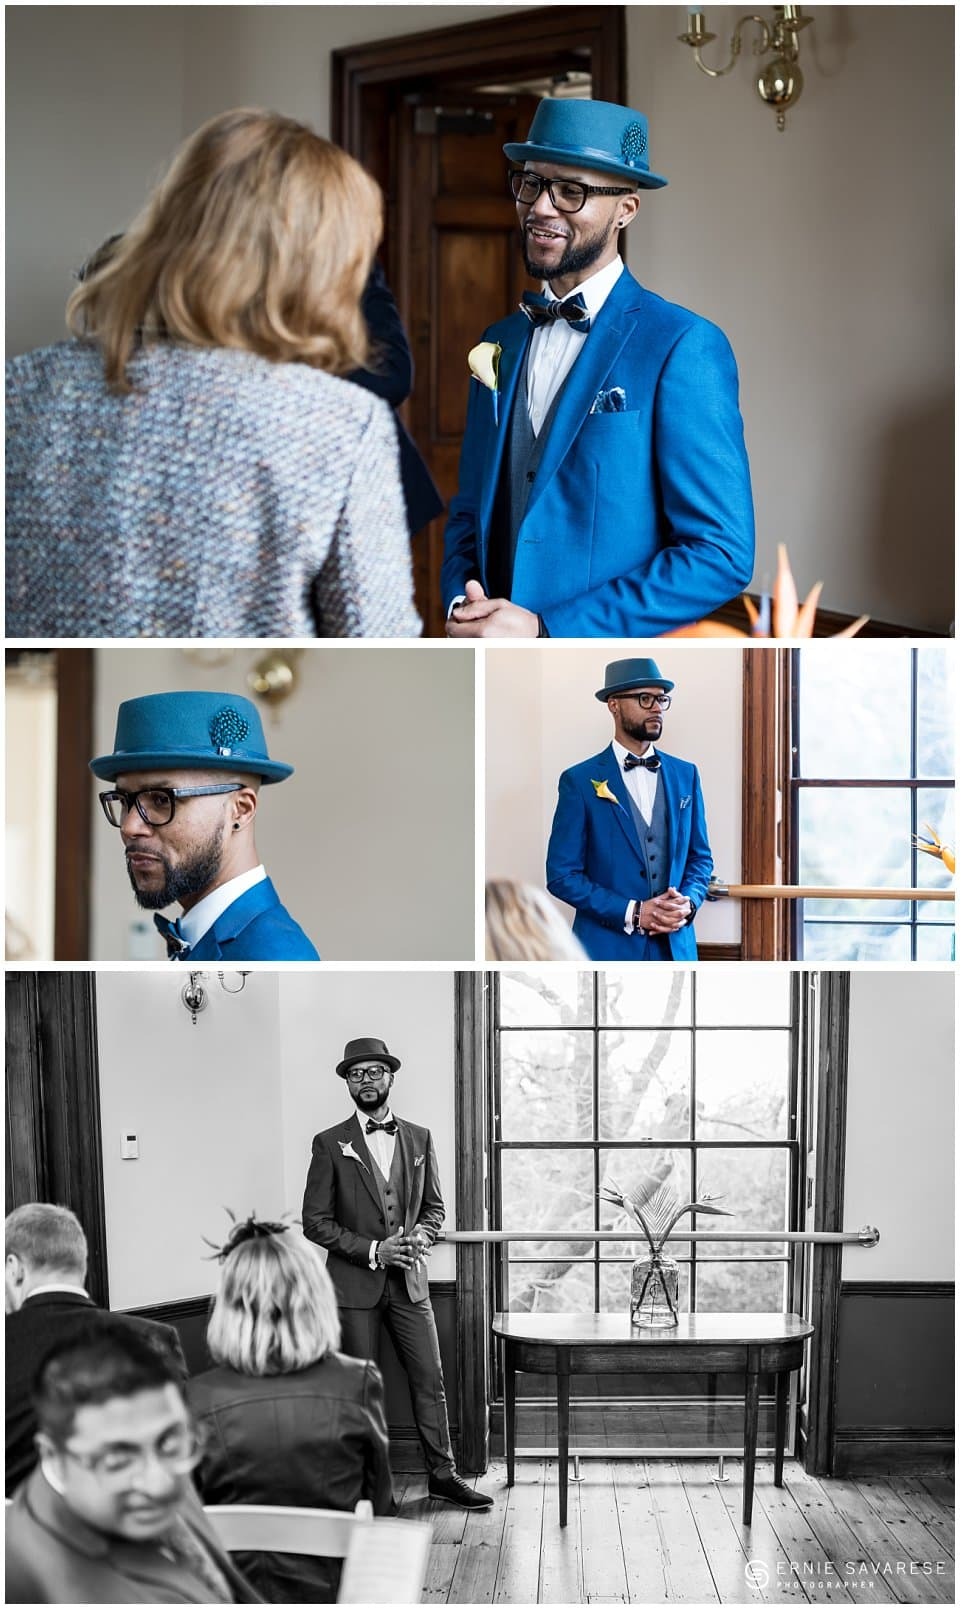 Wedding Photographer Greenwich Severndroog Castle 5